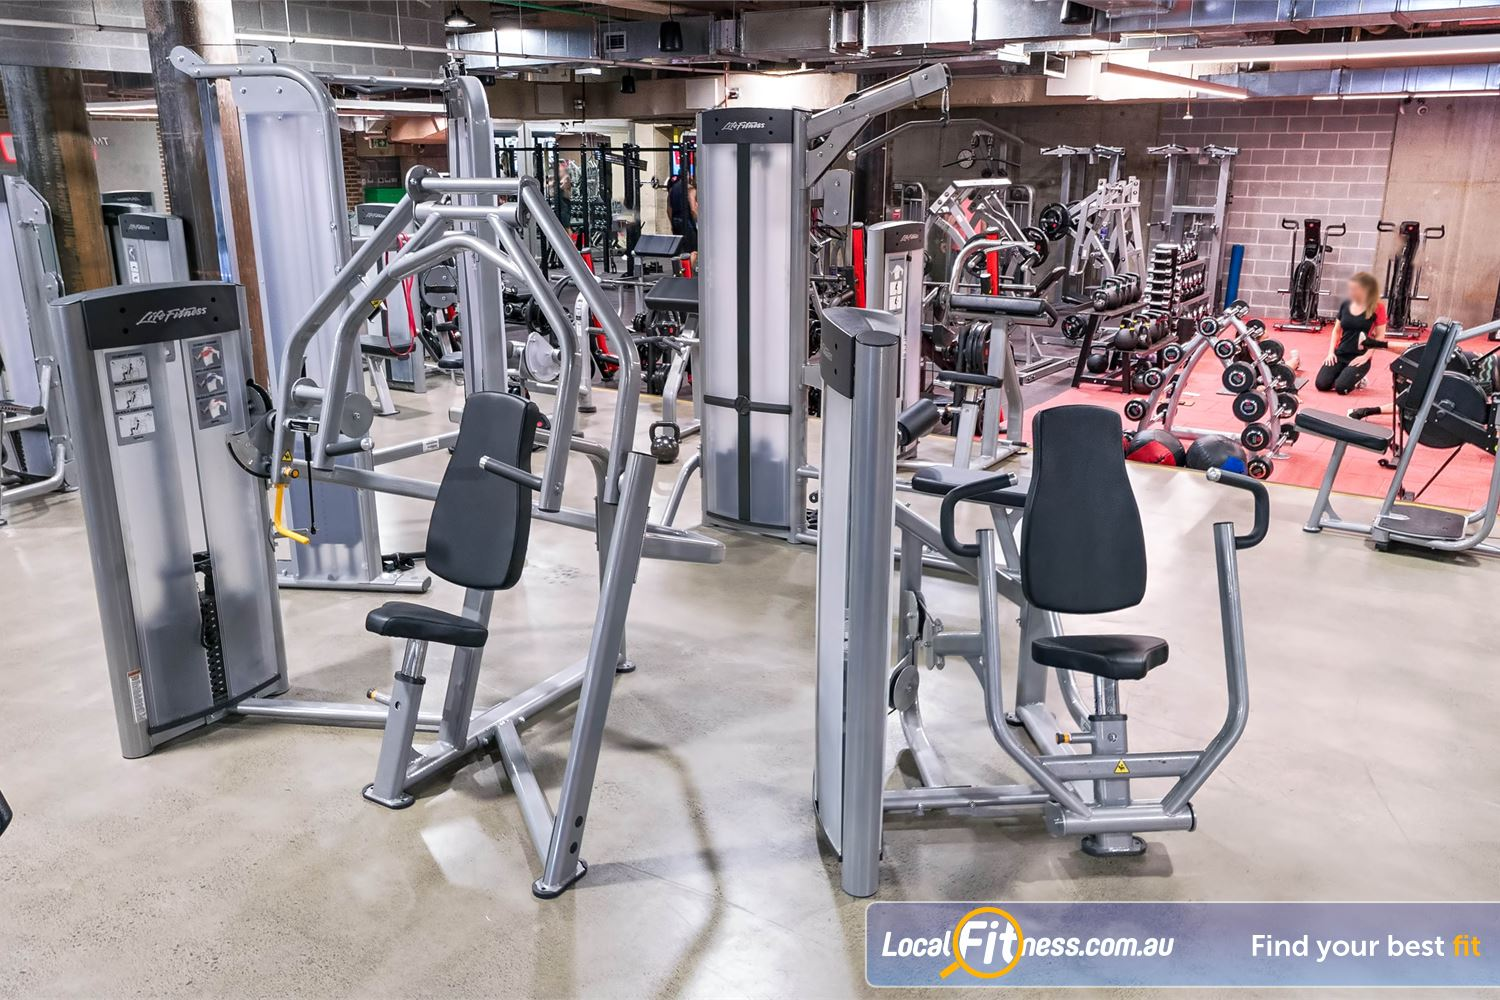 Fitness First Platinum Shelley St Near Strawberry Hills Full range of easy to use pin-loading machines from Life Fitness.